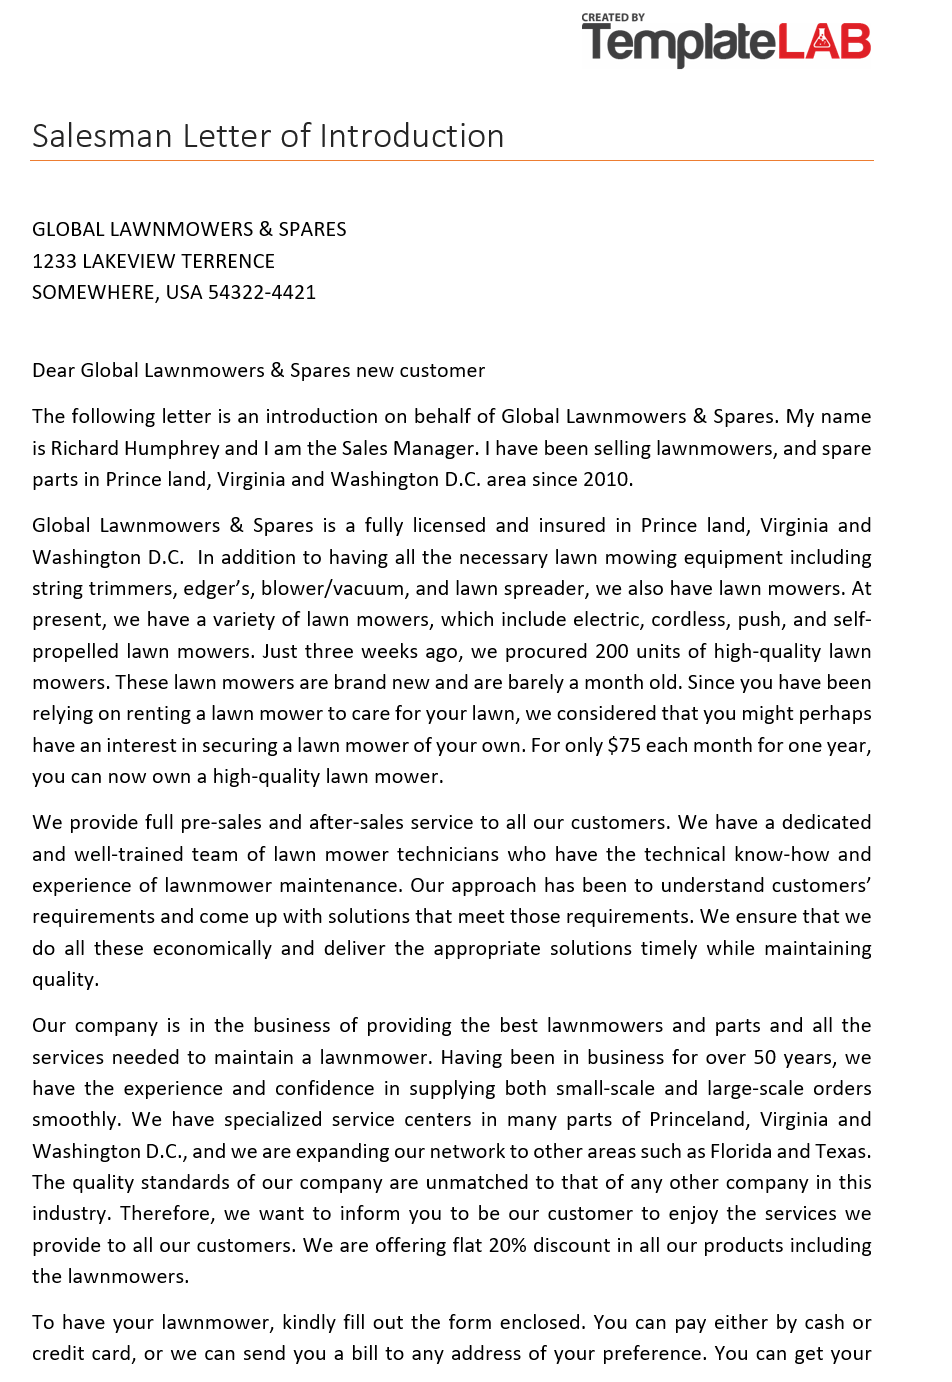 Free Salesman Letter of Introduction 1